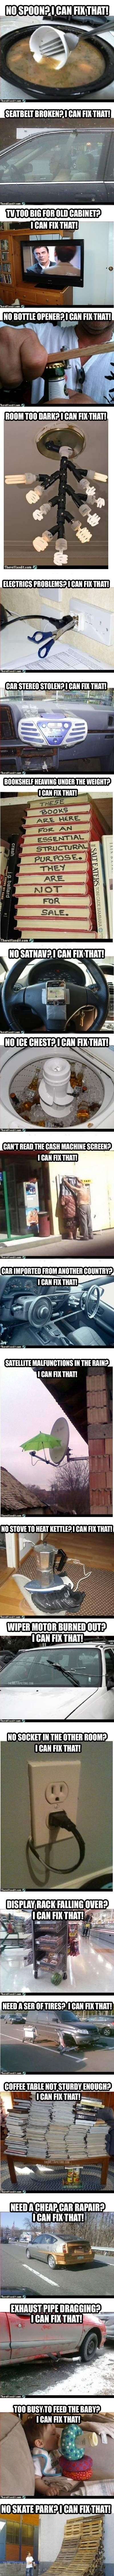 I can fix that… - One Stop Humor: Funny Pictures and Videos!